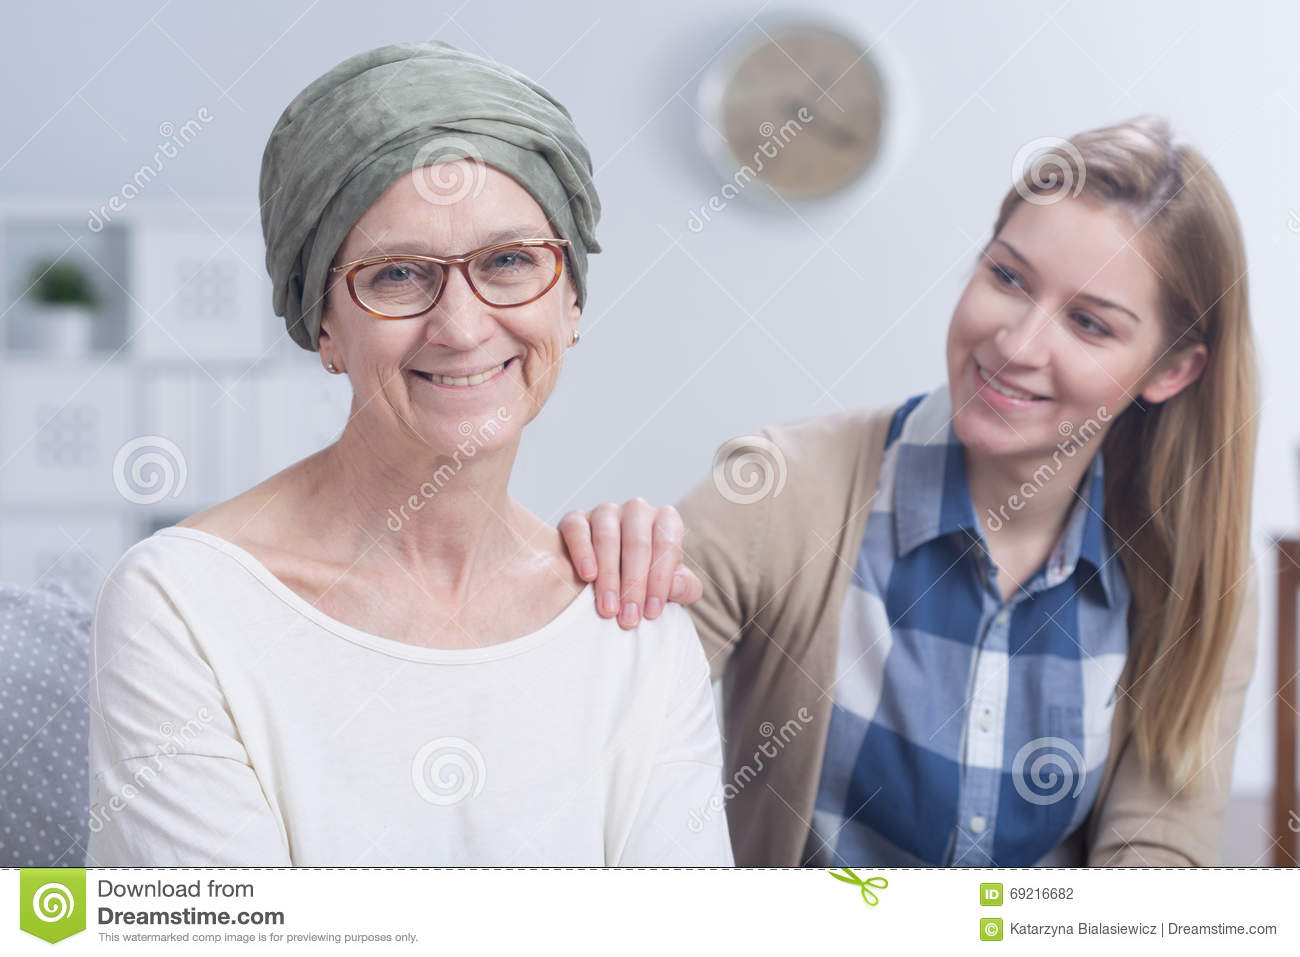 Fighting With Cancer With Family's Support Stock Photo